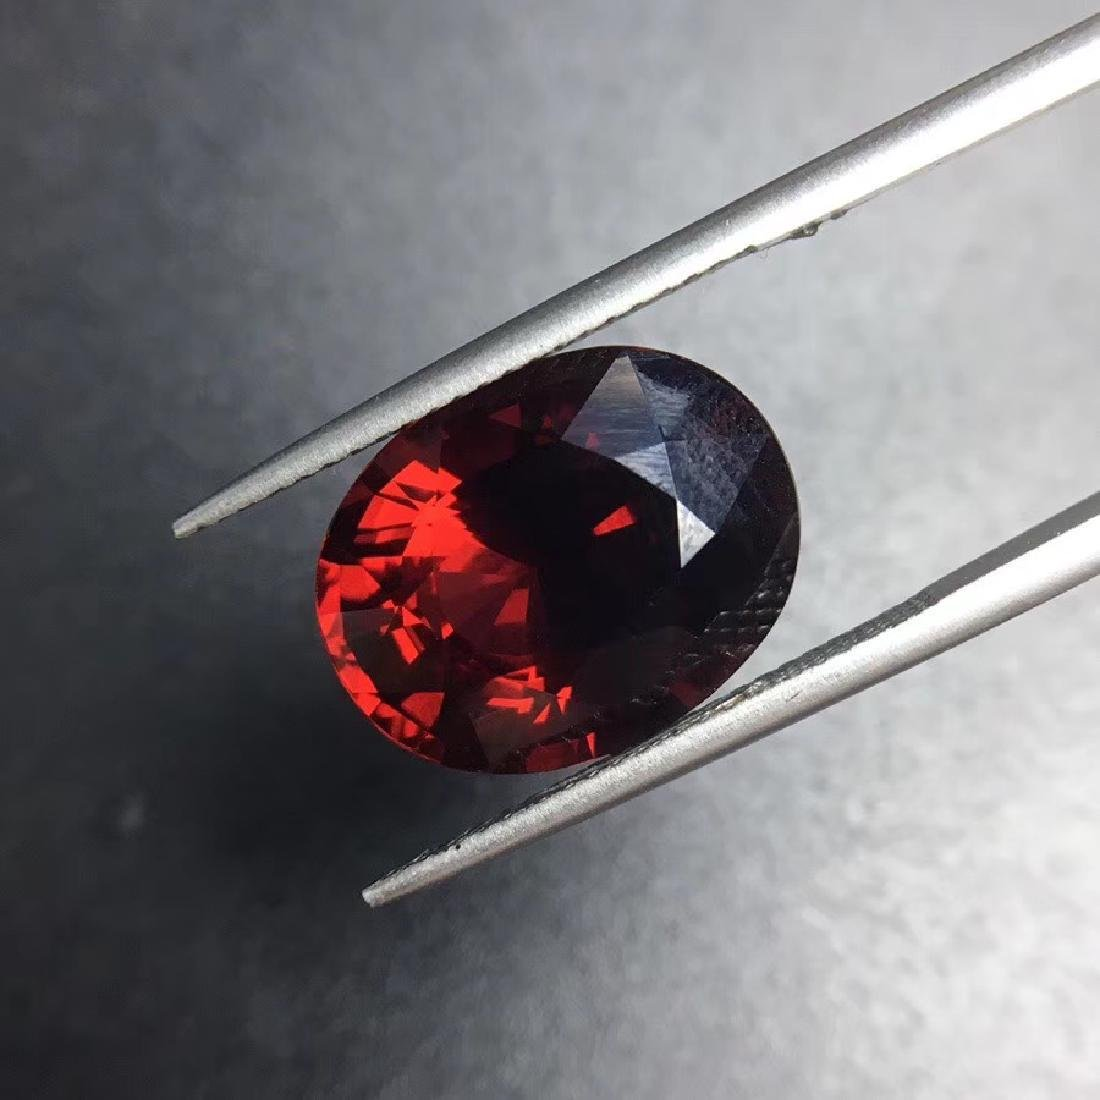 12.09 ct Garnet 12.0*15.4 mm Oval Cut - 3